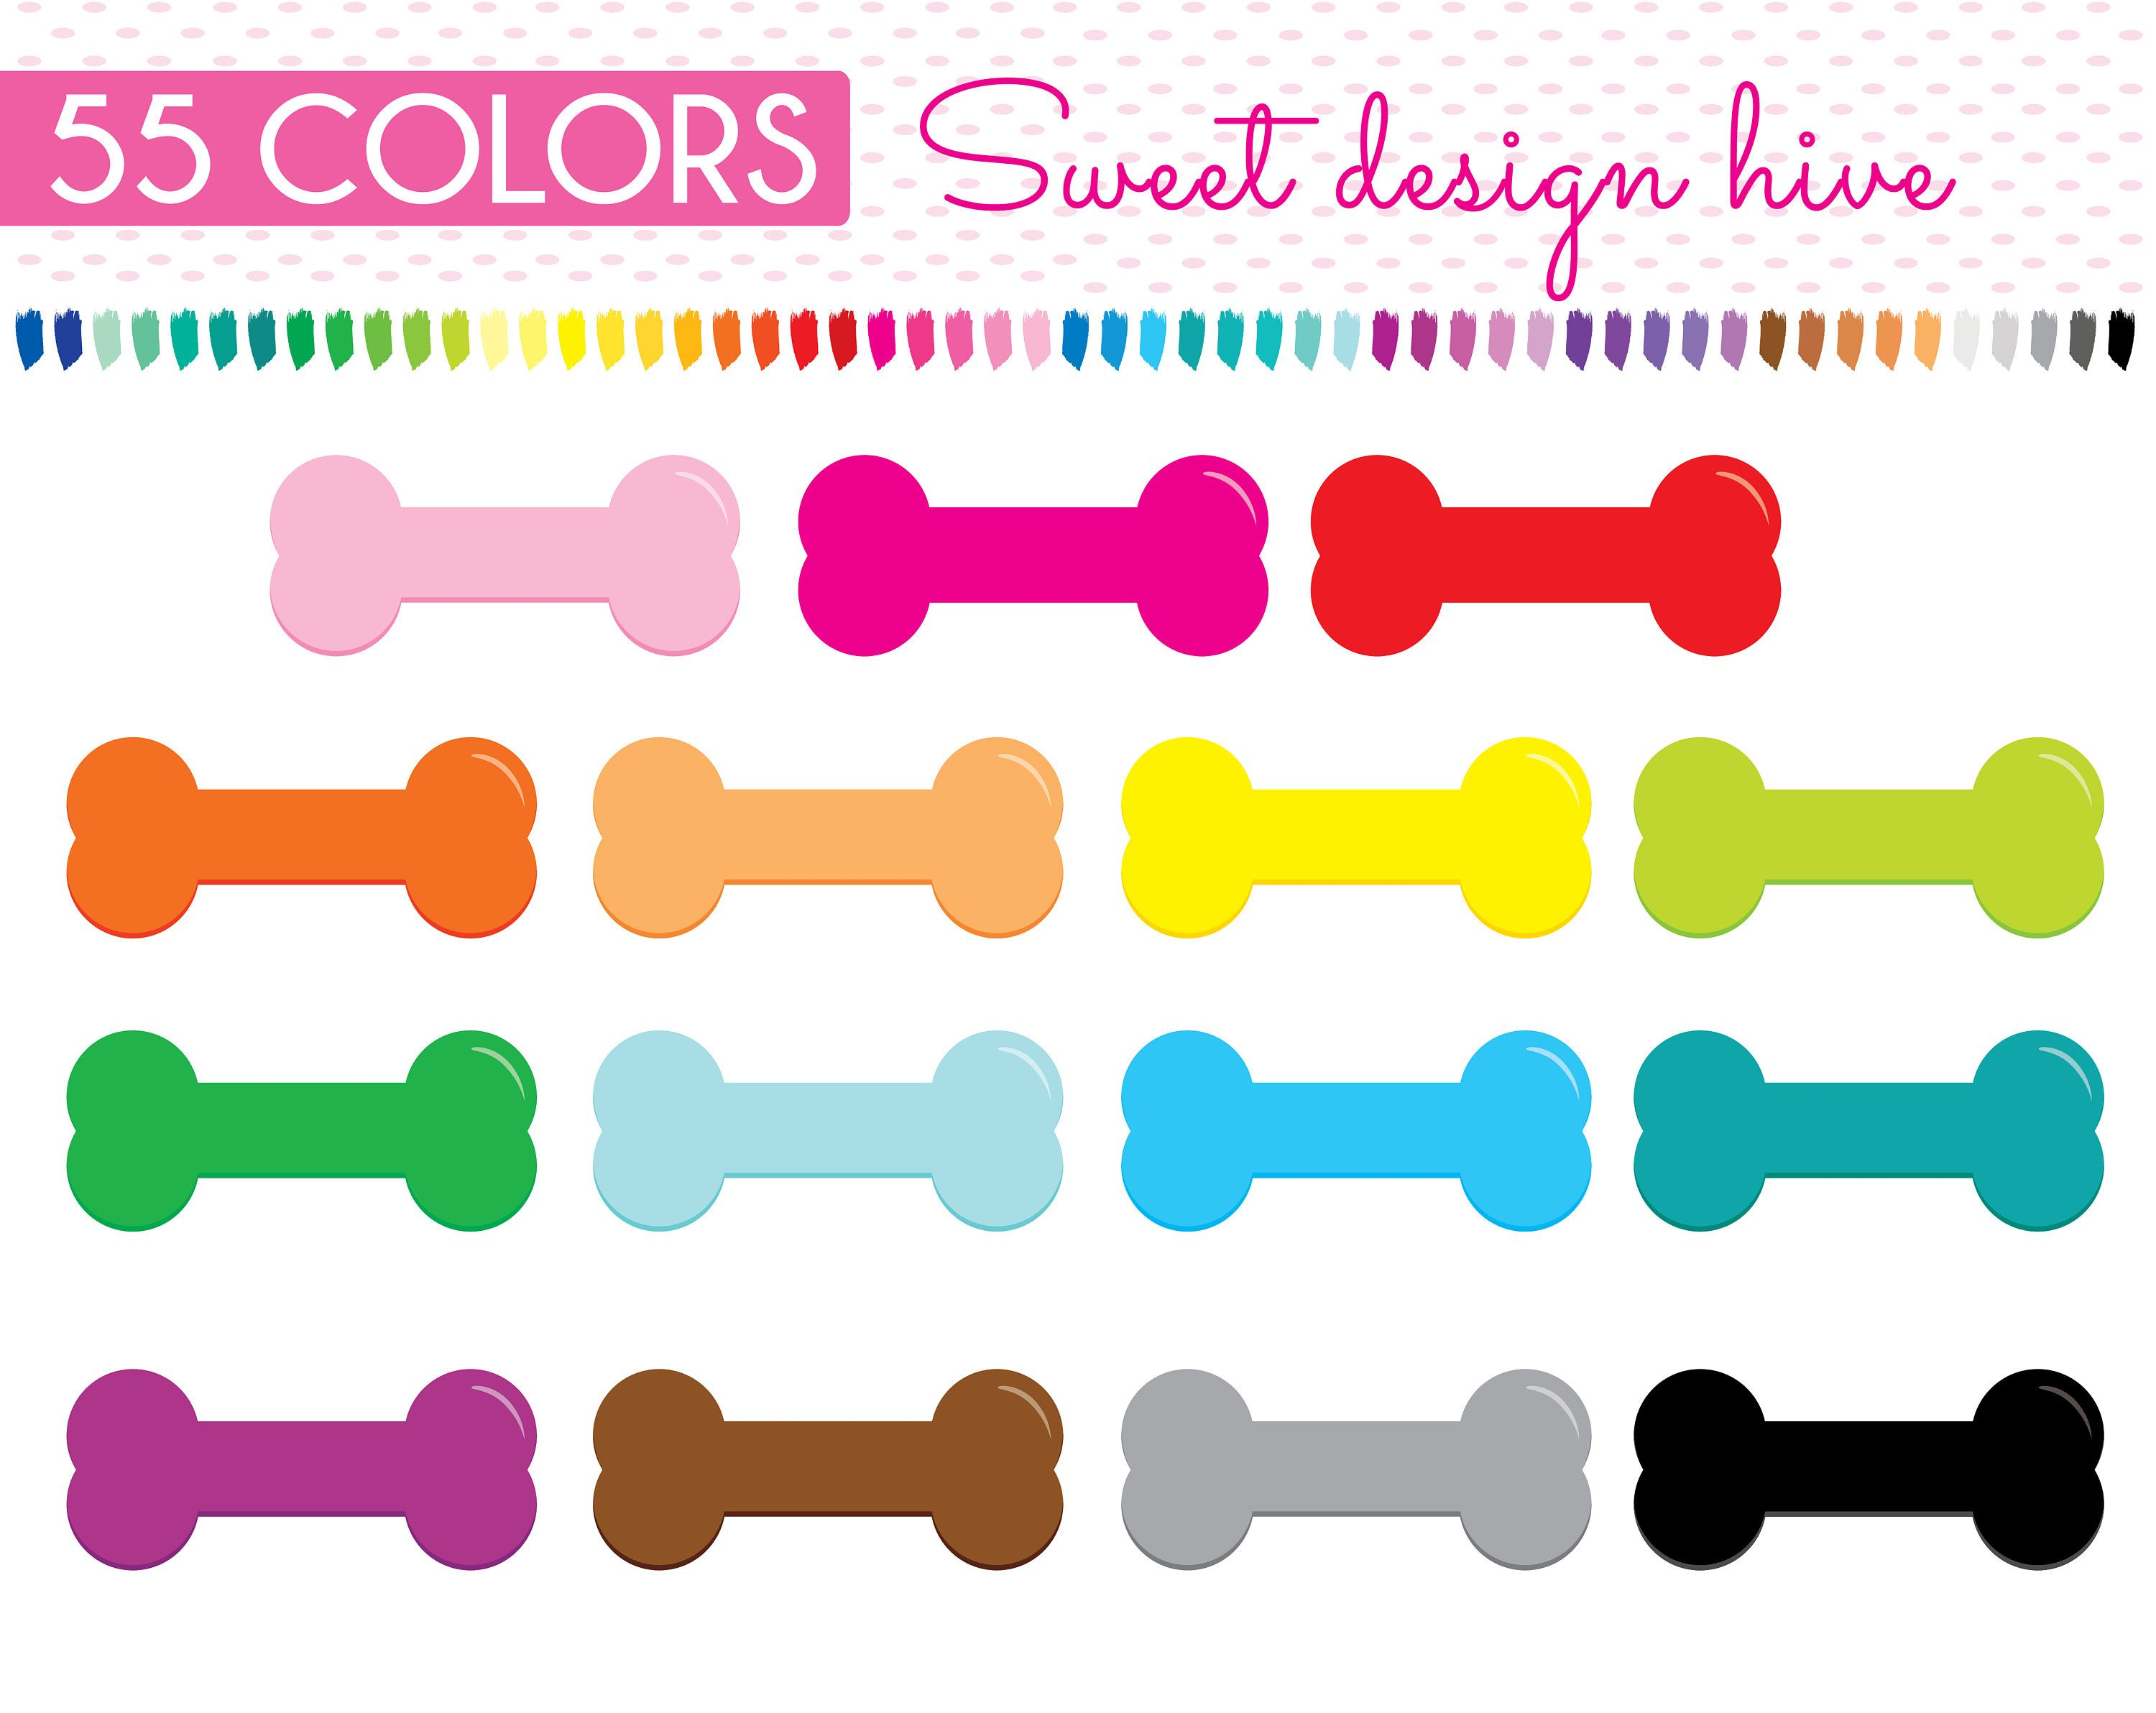 small resolution of dog bone clipart dog food puppy toy pet rainbow planner stickers graphics sticker clipart planner clipart commercial use pl0087 by sweetdesignhive